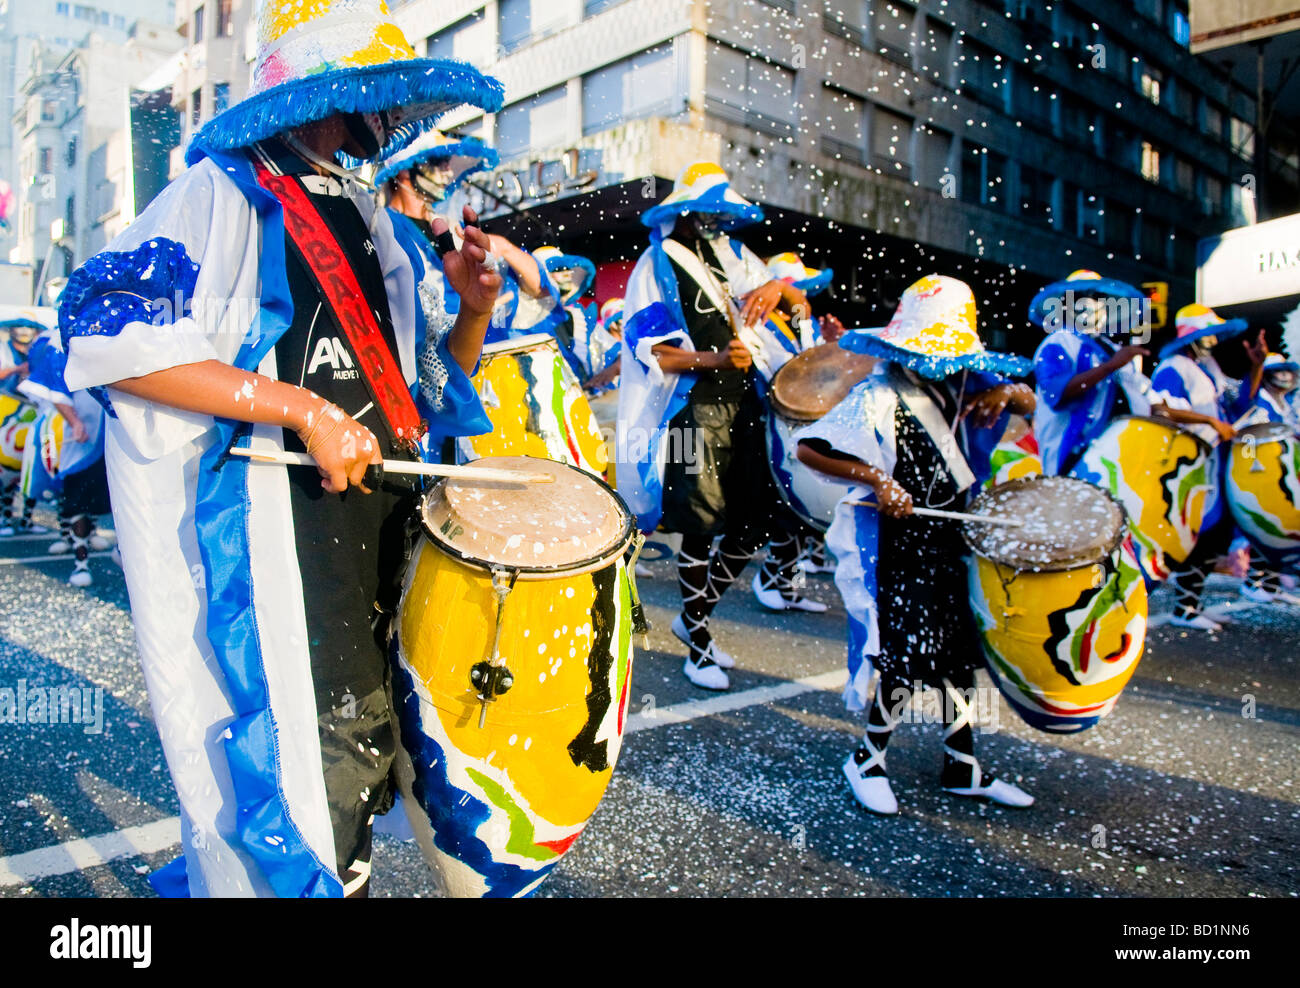 Candombe drummers march in the street of Montevideo Uruguay - Stock Image